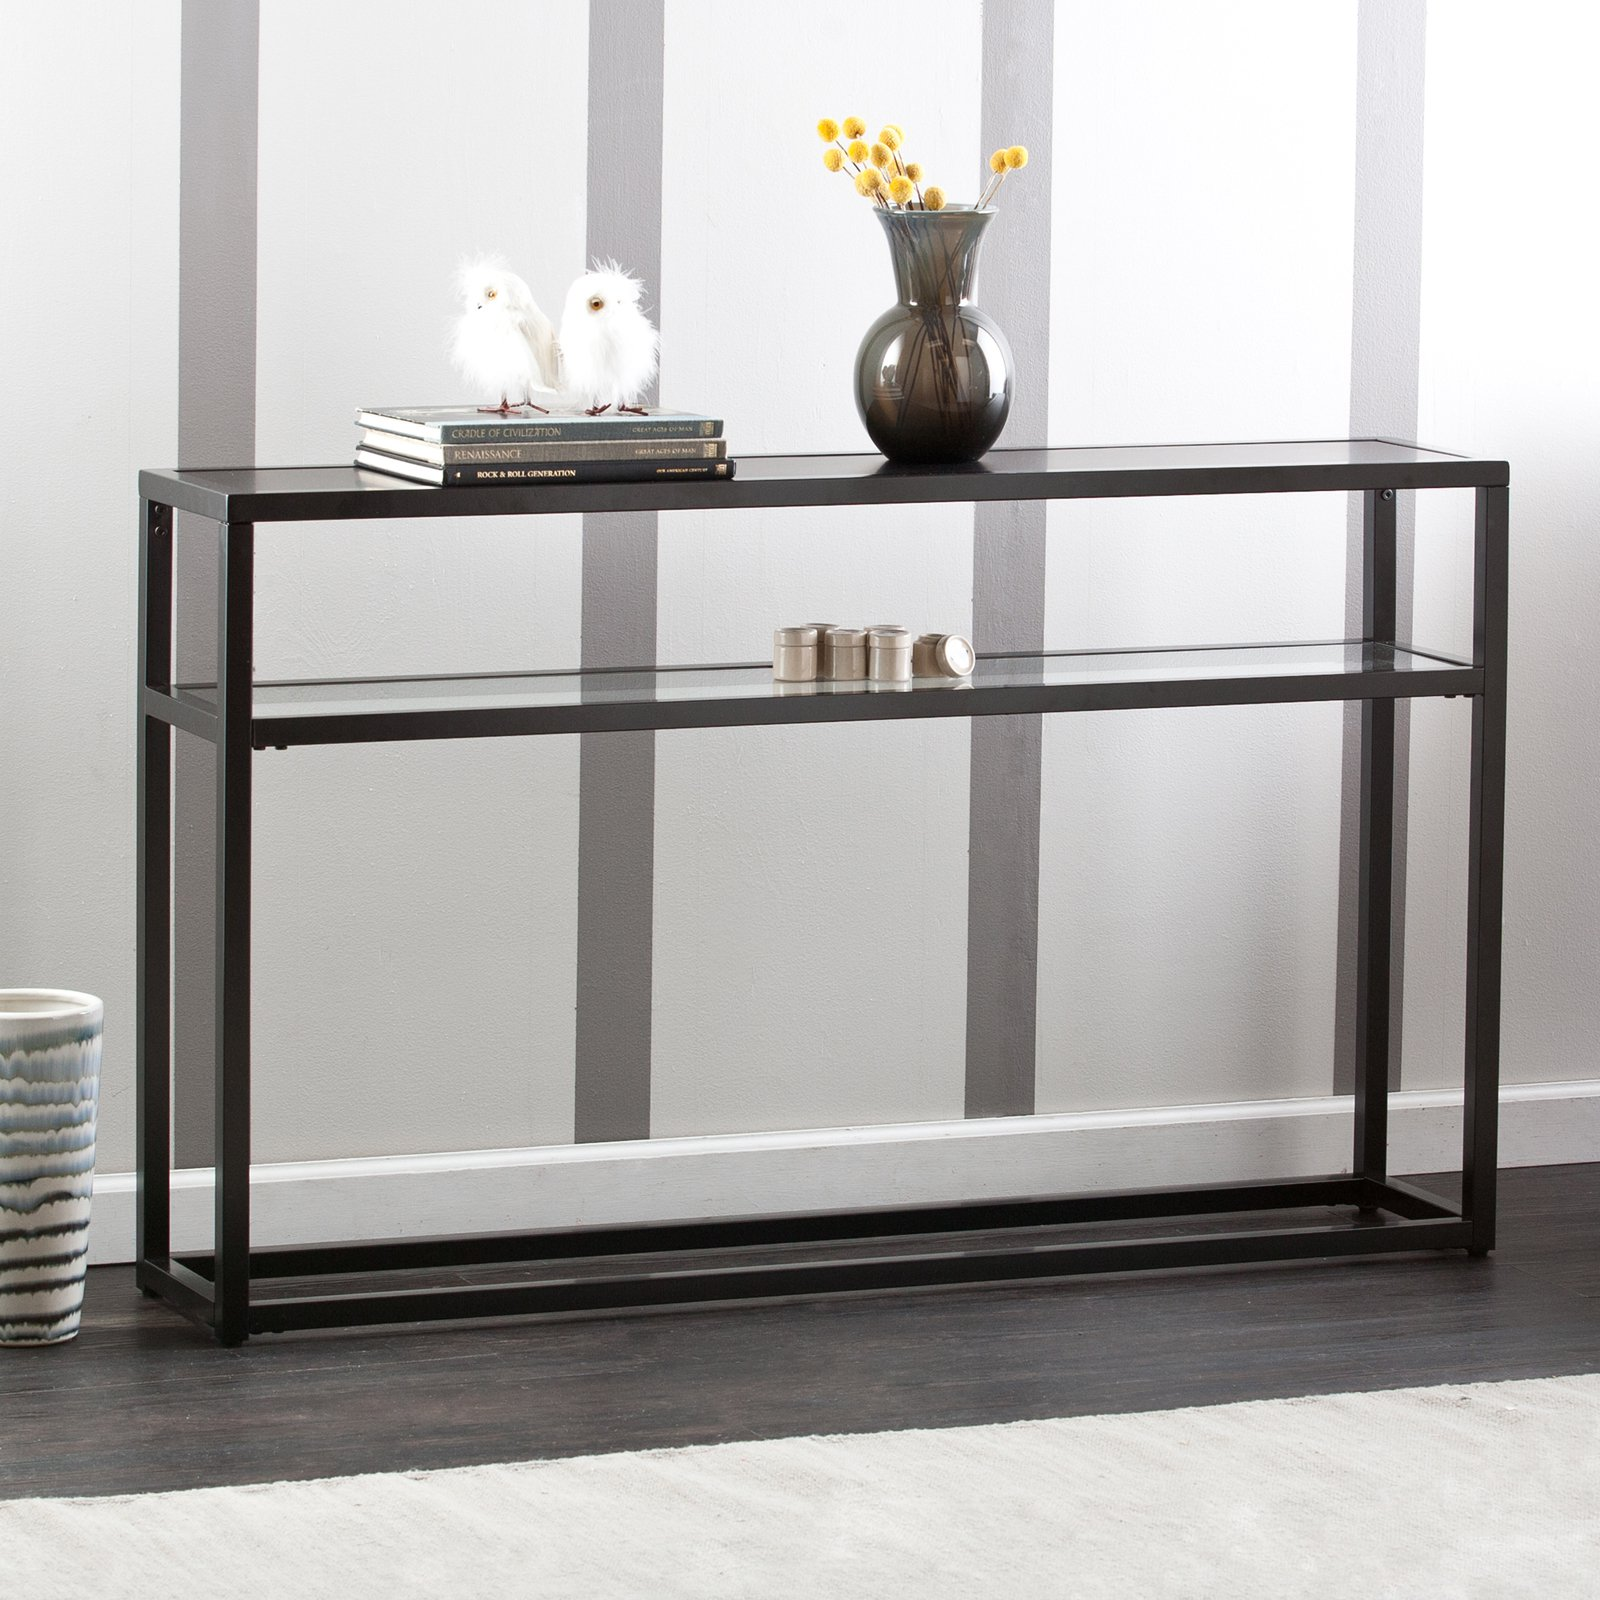 holly and martin baldrick console table glass black room essentials mixed material accent barnwood end tables coffee tray ideas foot long victorian living furniture contemporary